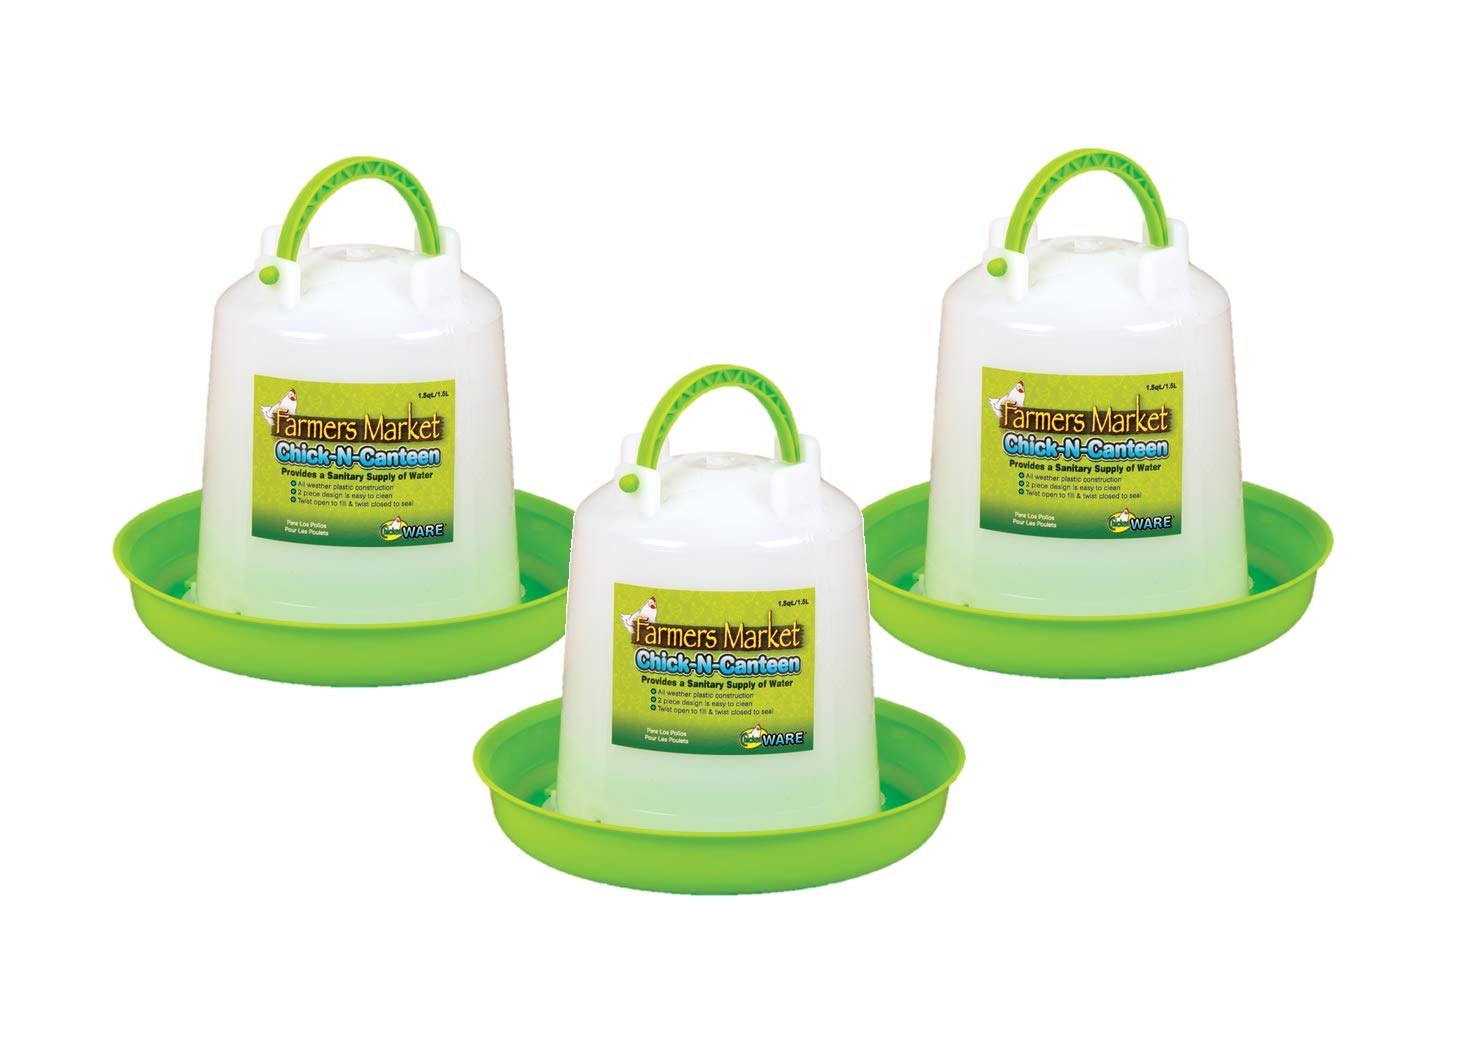 Ware Manufacturing 3 Pack of Chick-N-Canteen, Small Bird Waterer by Ware Manufacturing